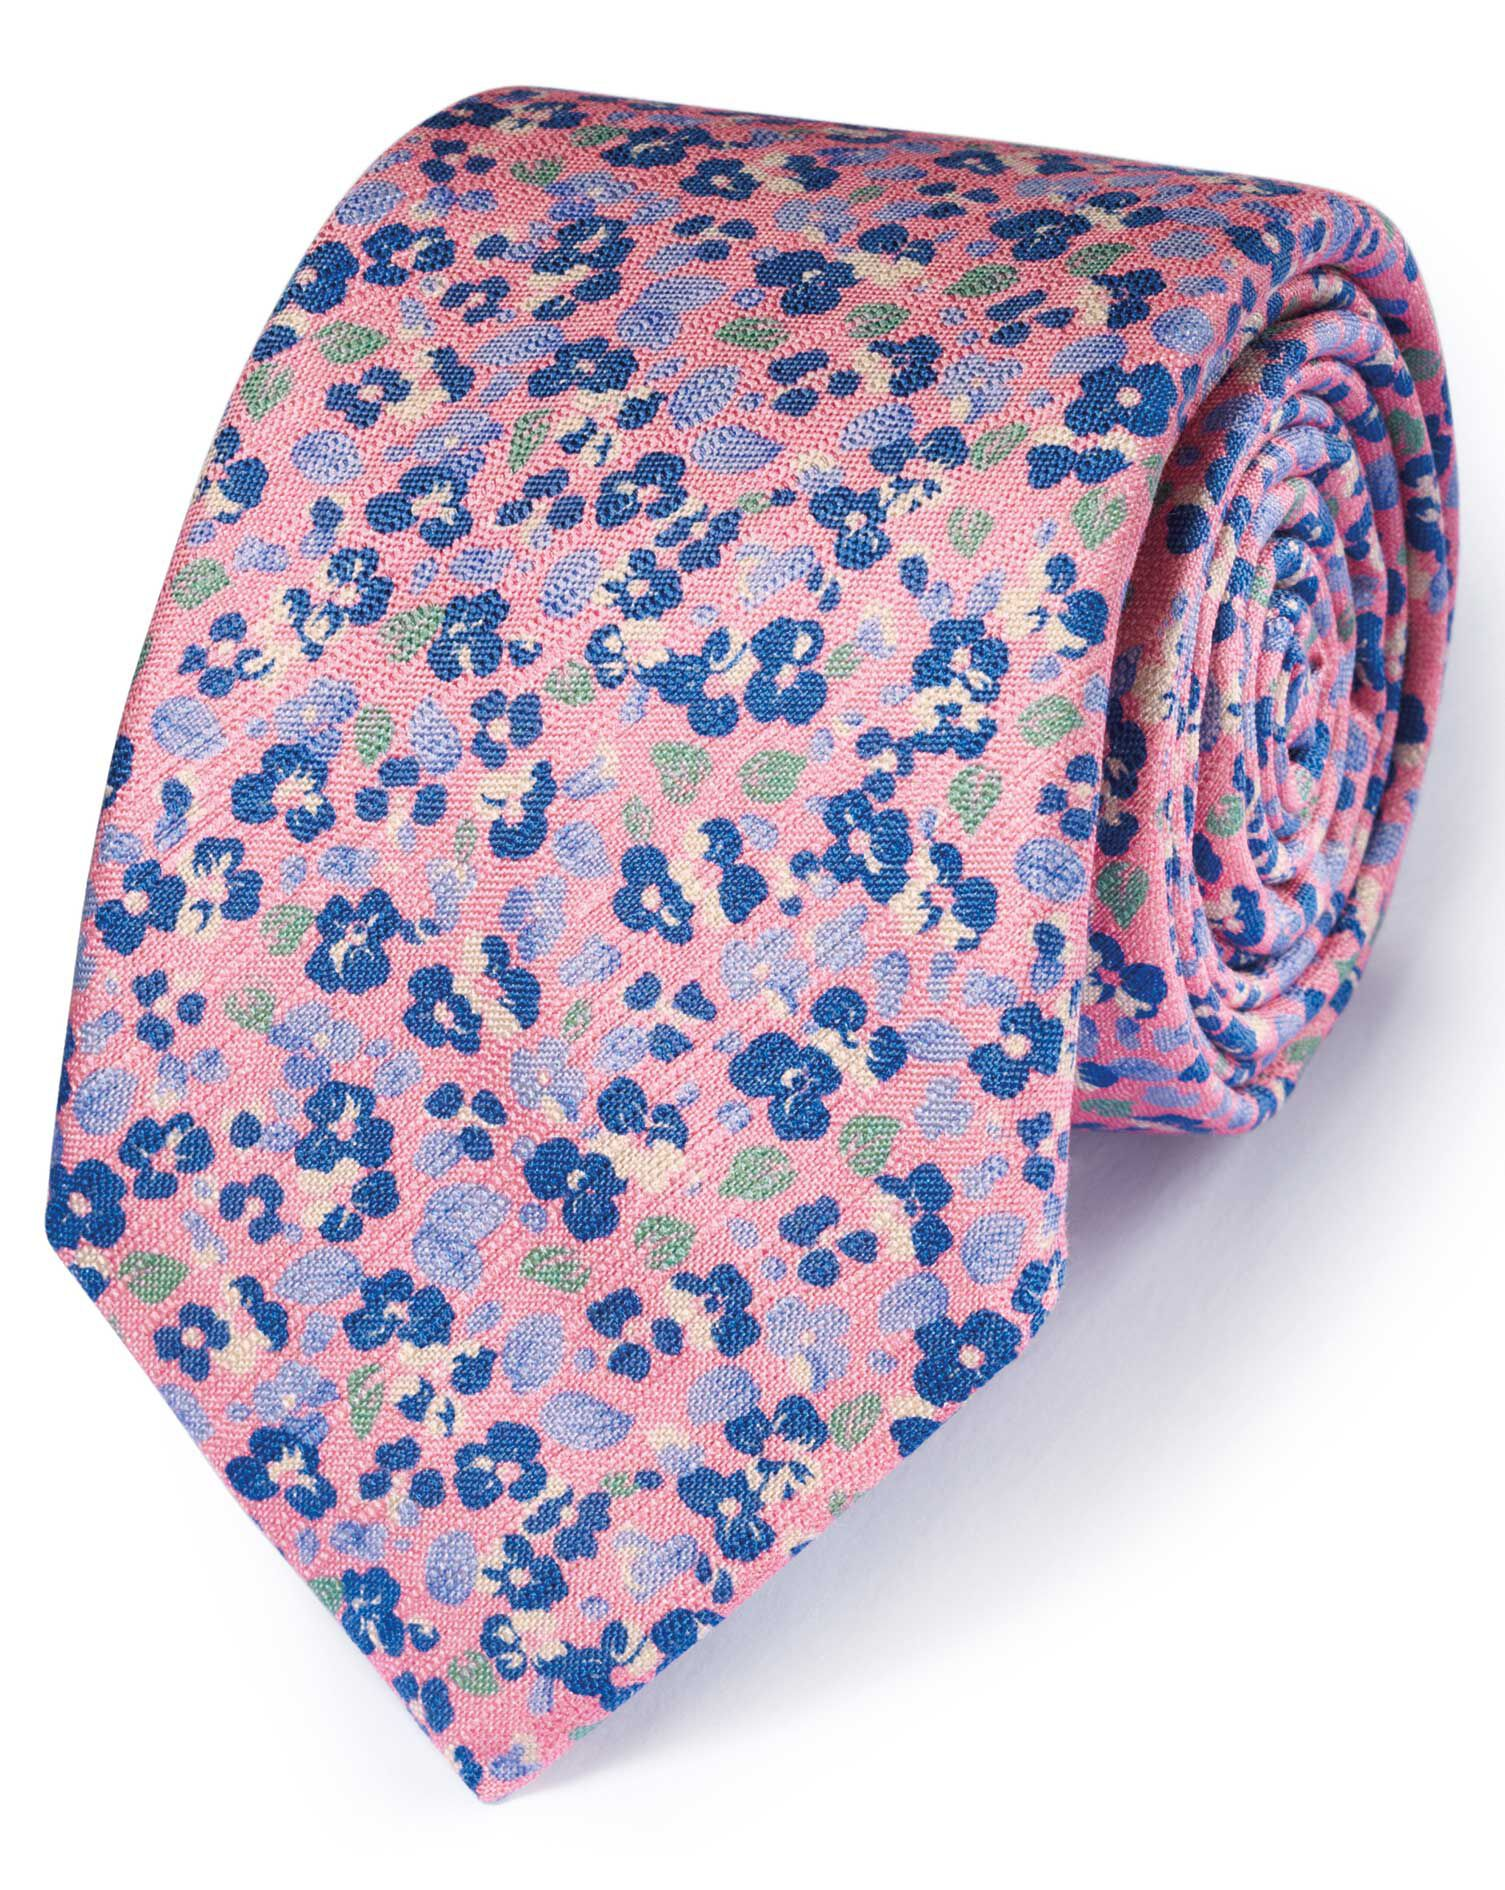 Pink and Blue Cotton Mix Printed Floral Italian Luxury Tie Size OSFA by Charles Tyrwhitt